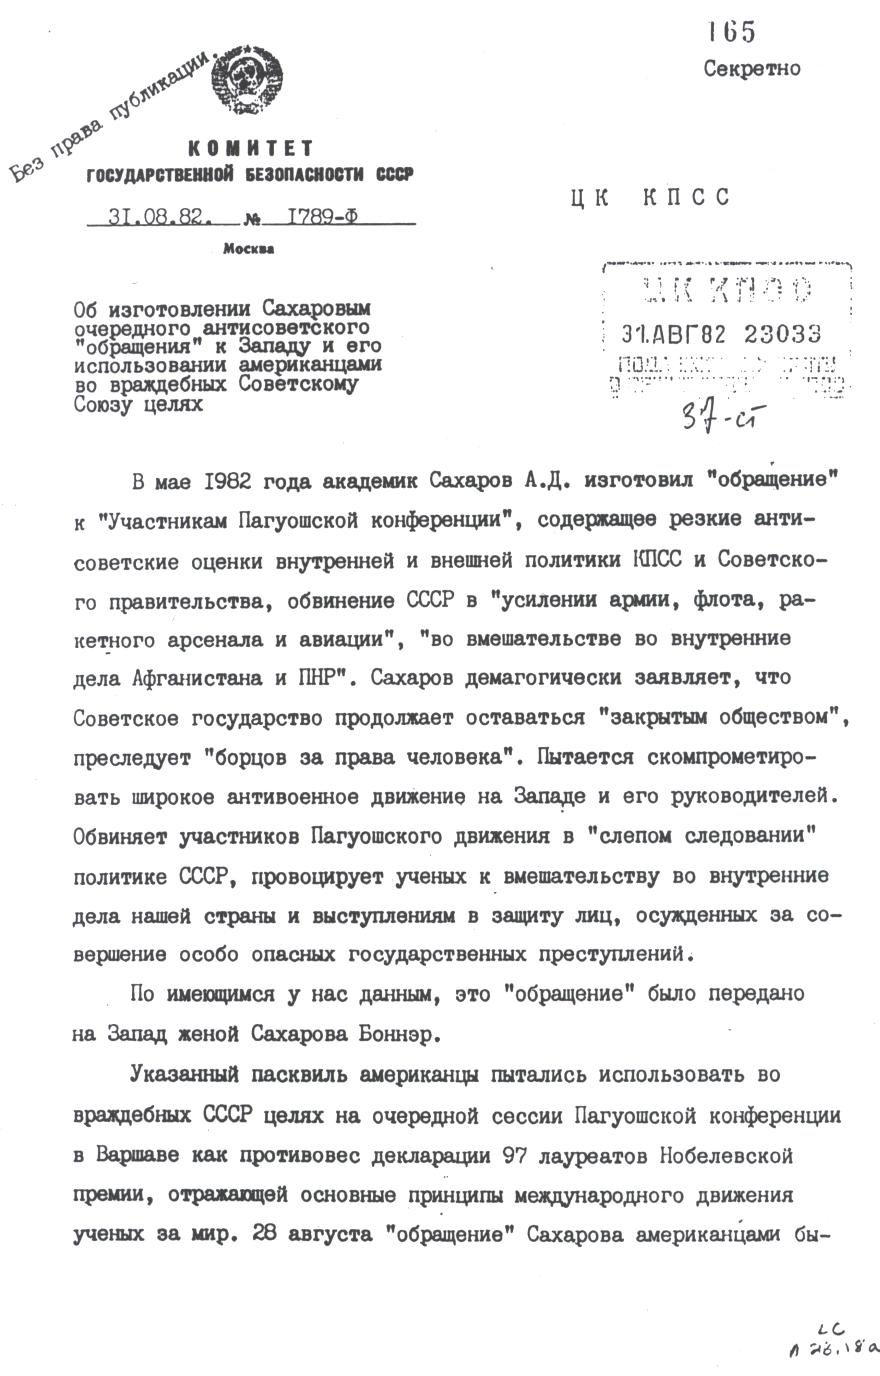 Folklore Site Documents In Russian 66